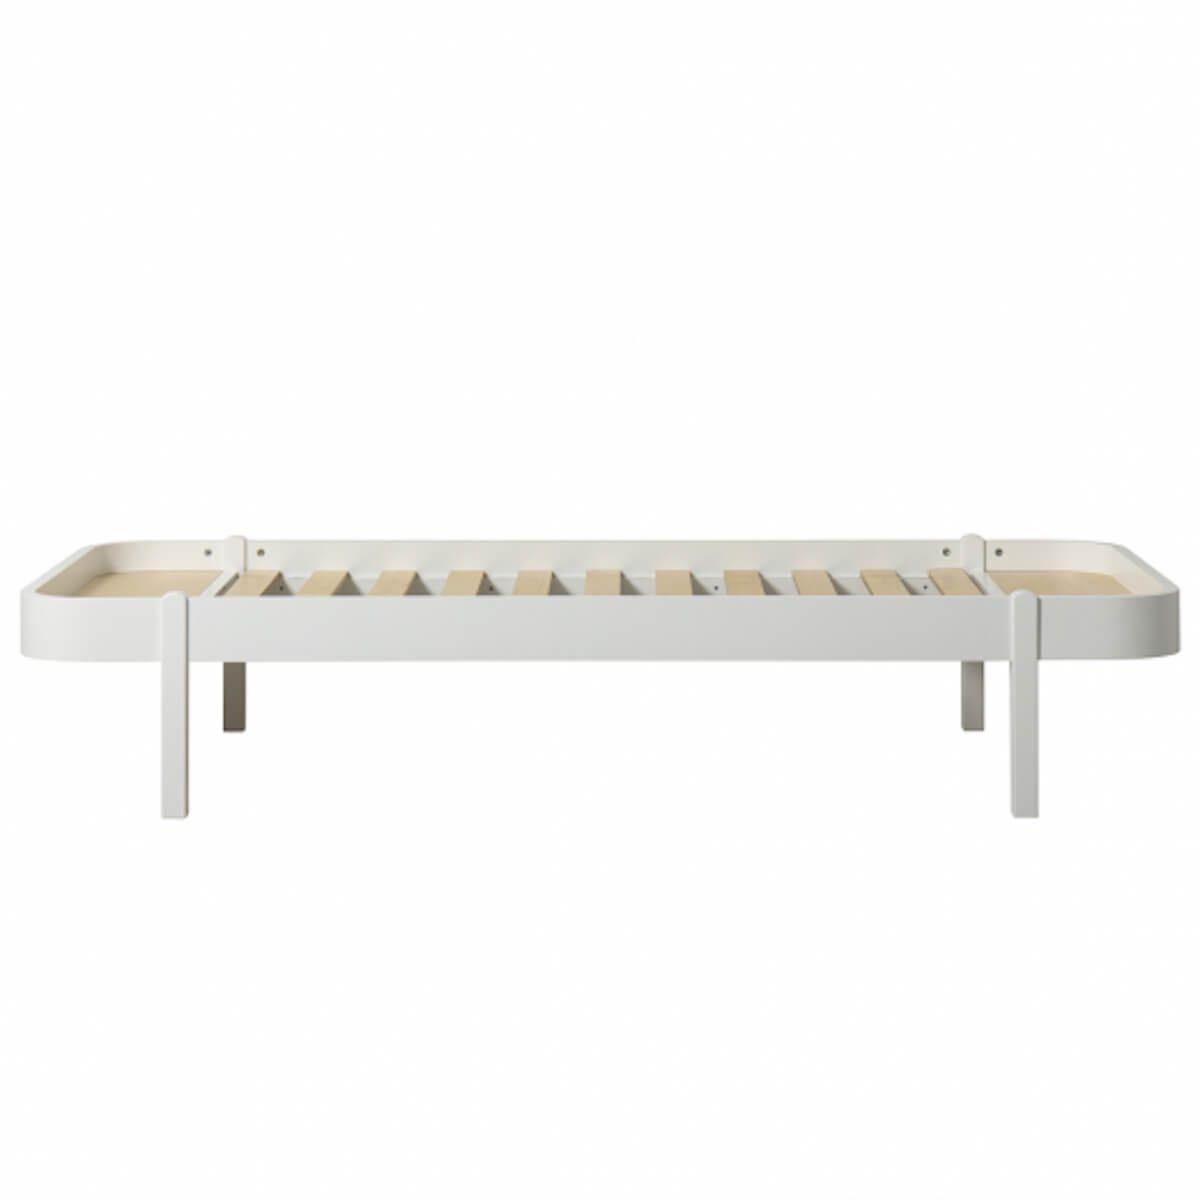 Lit 90x200cm WOOD LOUNGER Oliver Furniture blanc